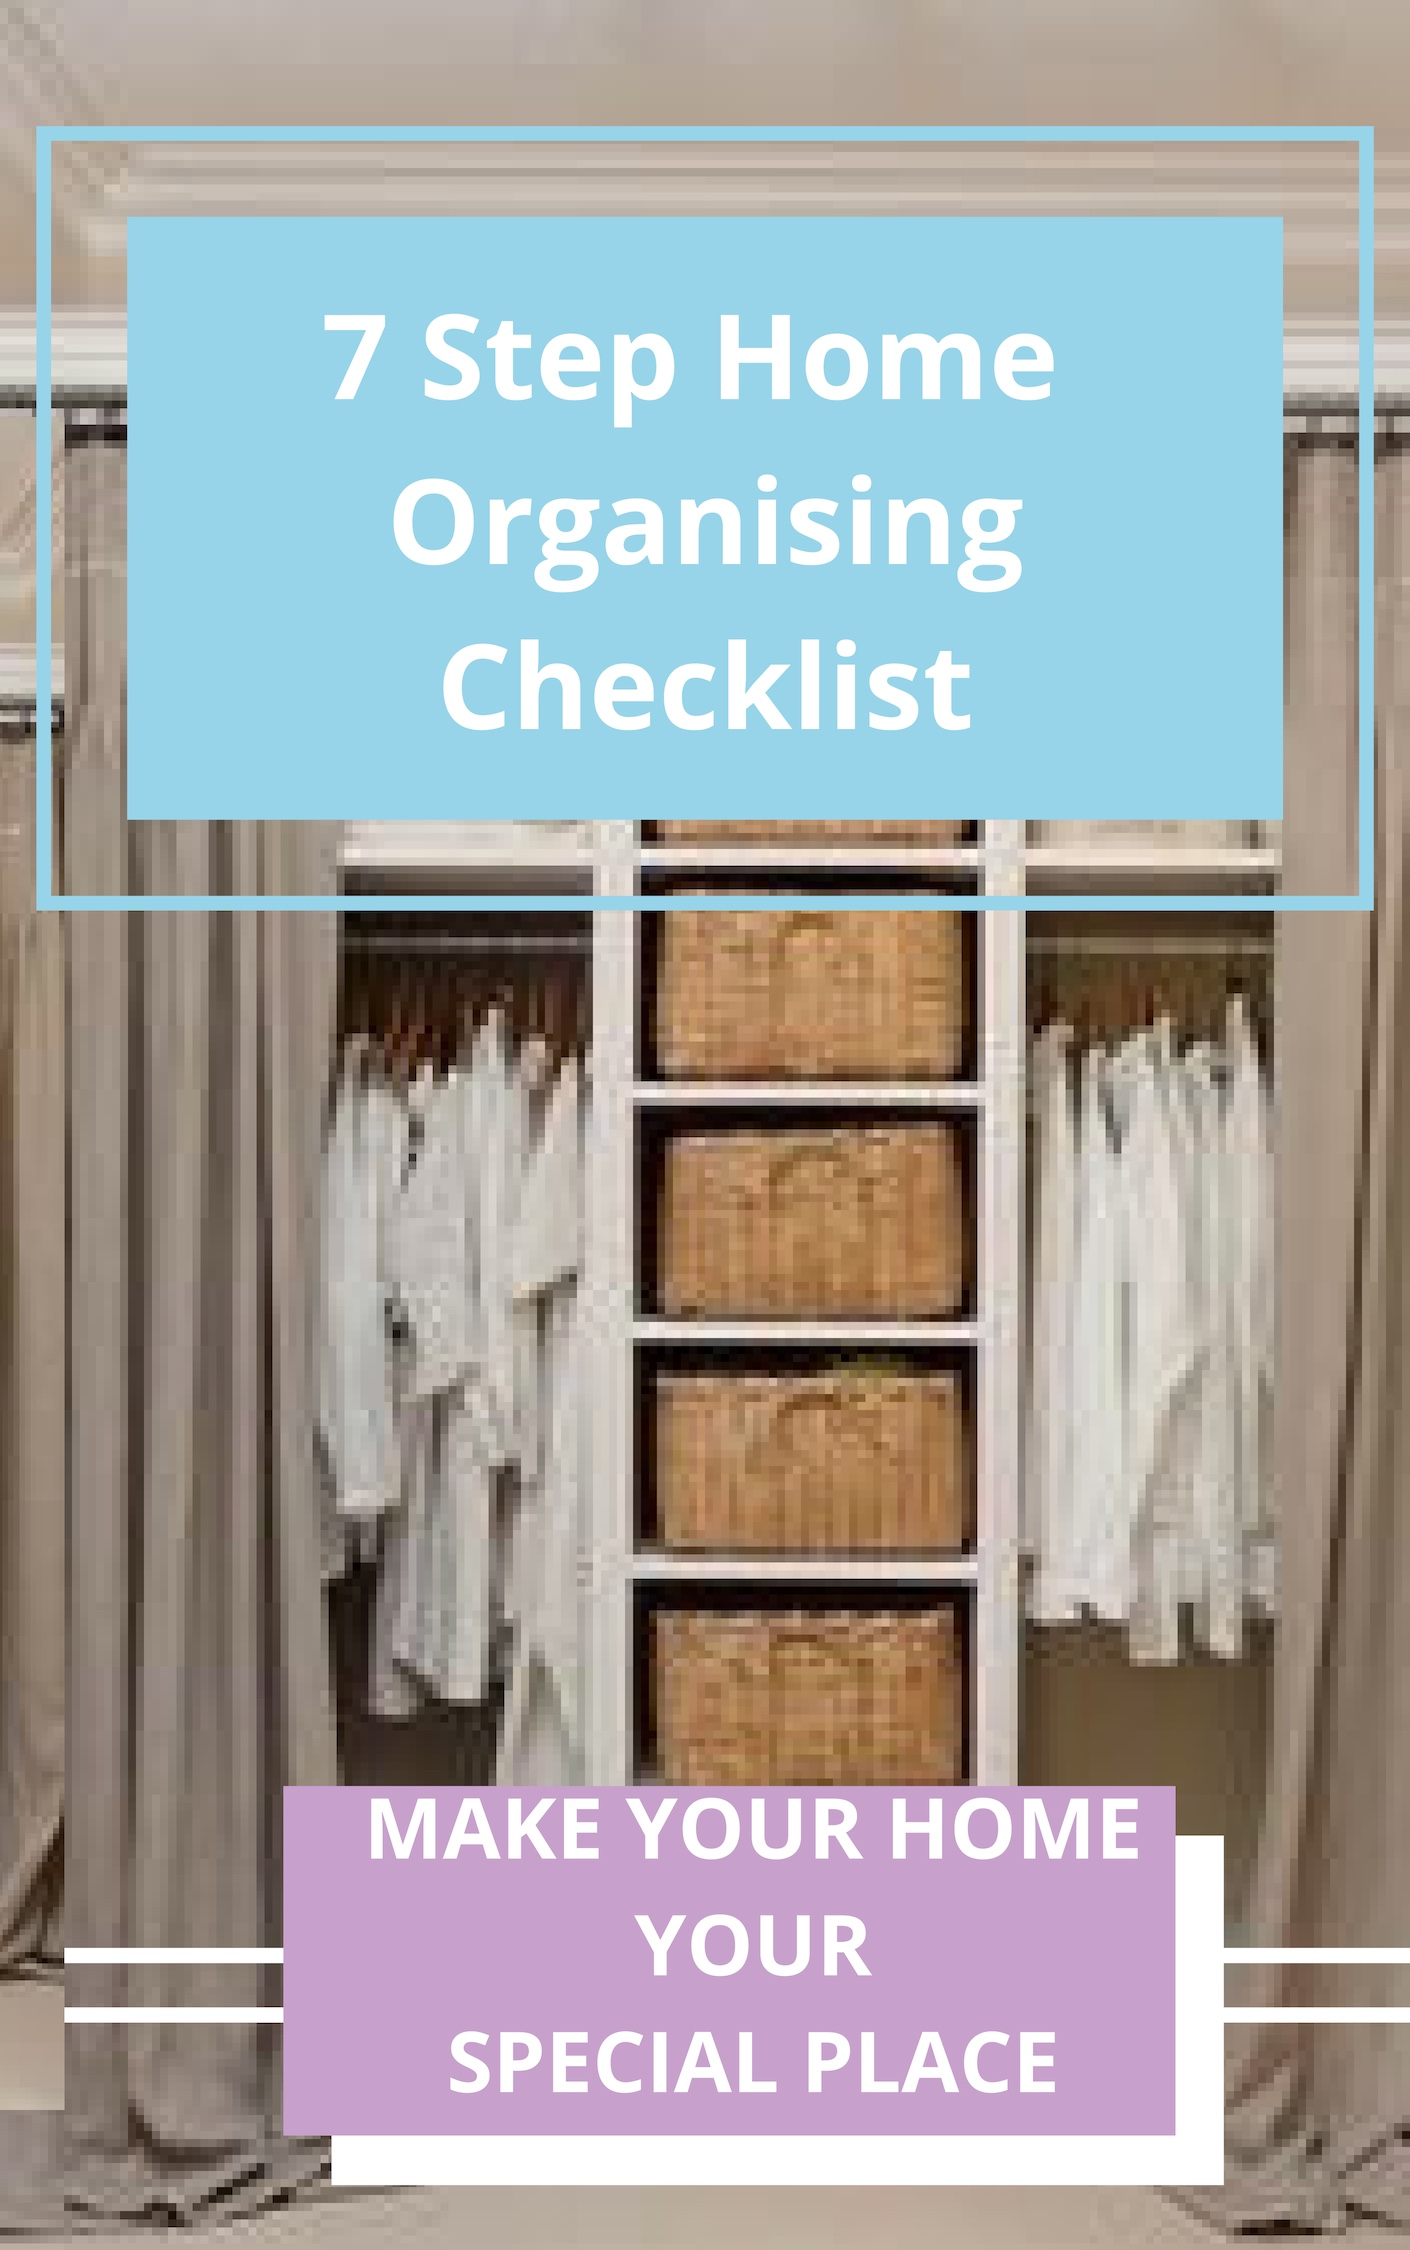 7 Step Home Organising Checklist - Organising starts here ……- use this checklist to get you started- 7 steps to declutter and organise- follow the process and you see resultsDownload your free checklist with my compliments